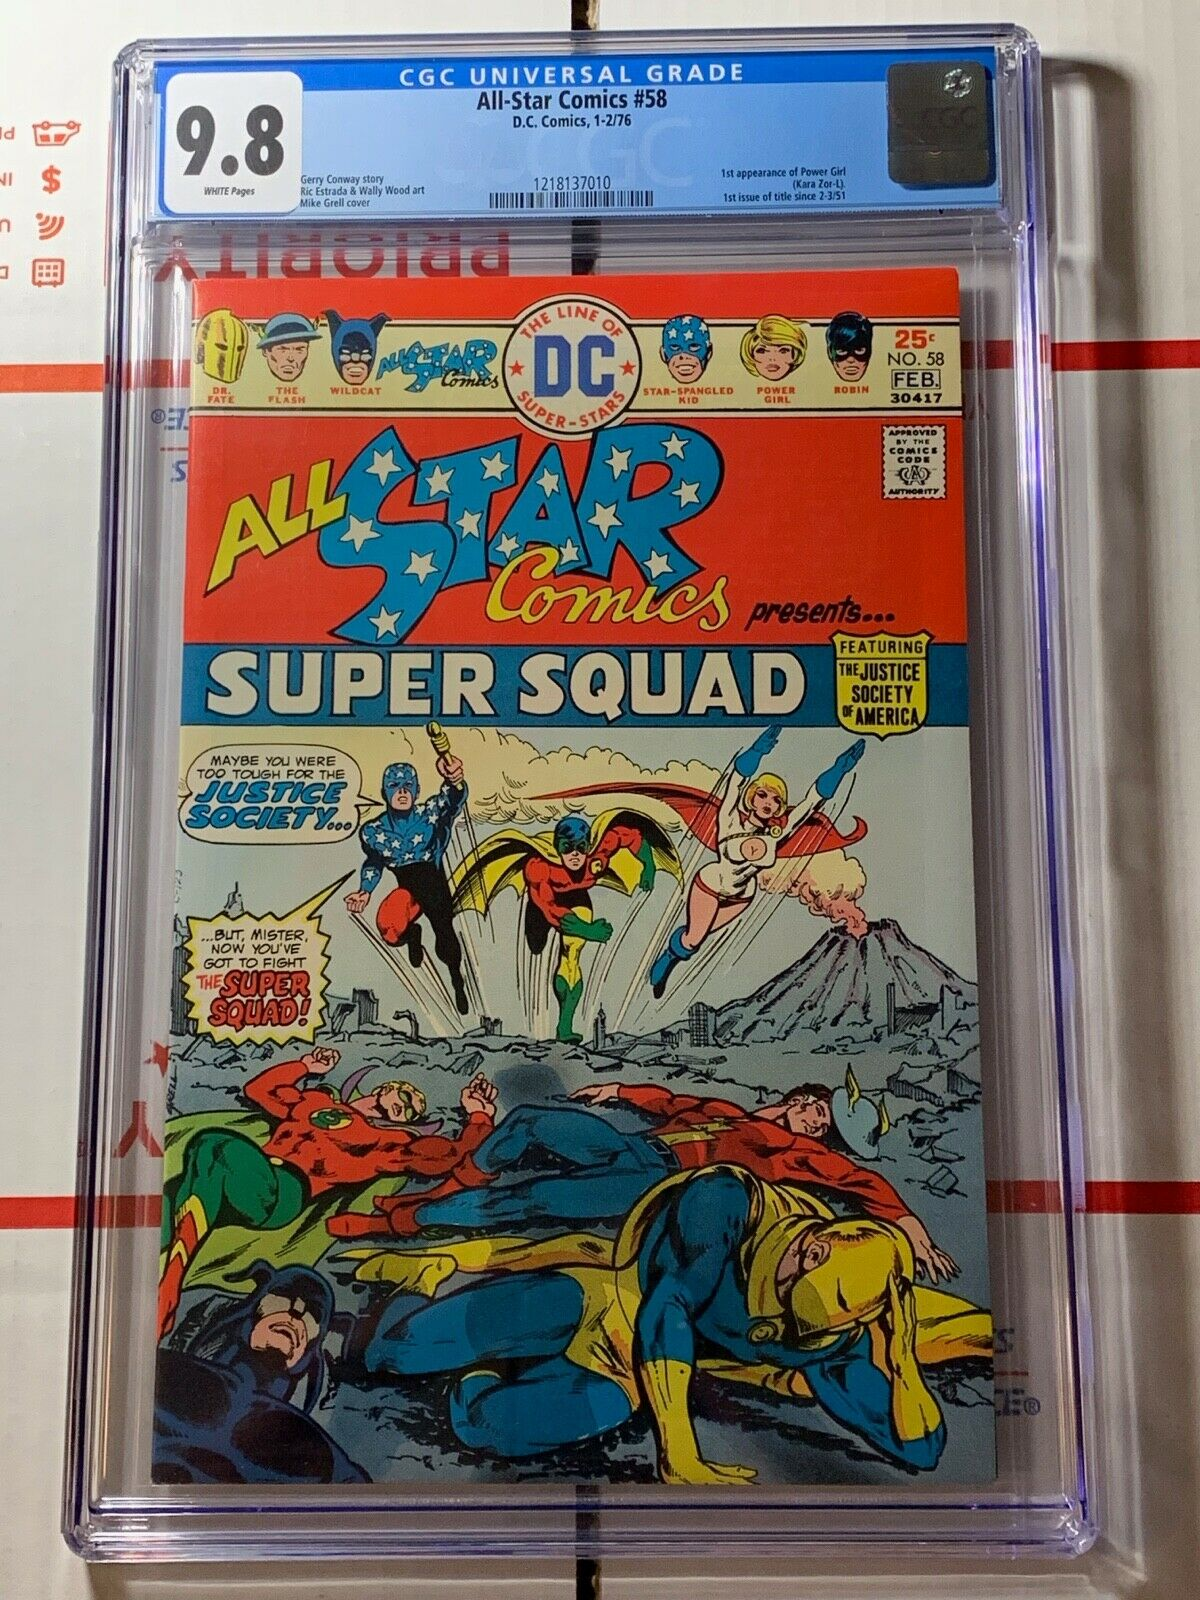 All-Star Comics #58 (DC Comics 1976) CGC 9.8 FIRST APPEARANCE OF POWER GIRL